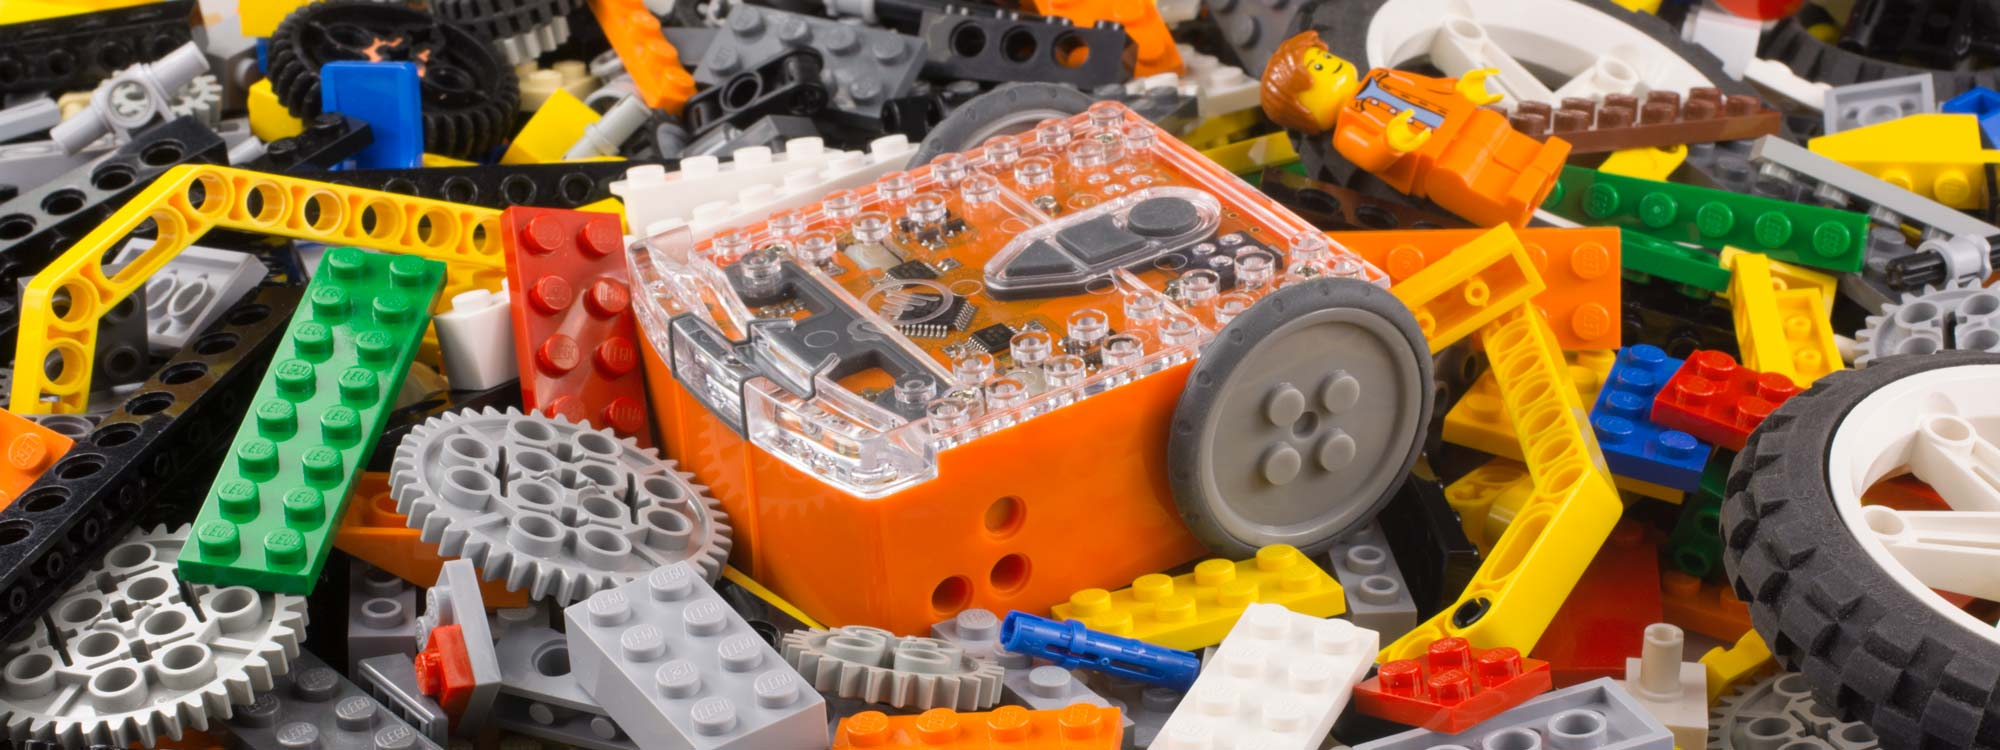 Edison Robots Work With Lego Bricks Affordable Educational And Fun